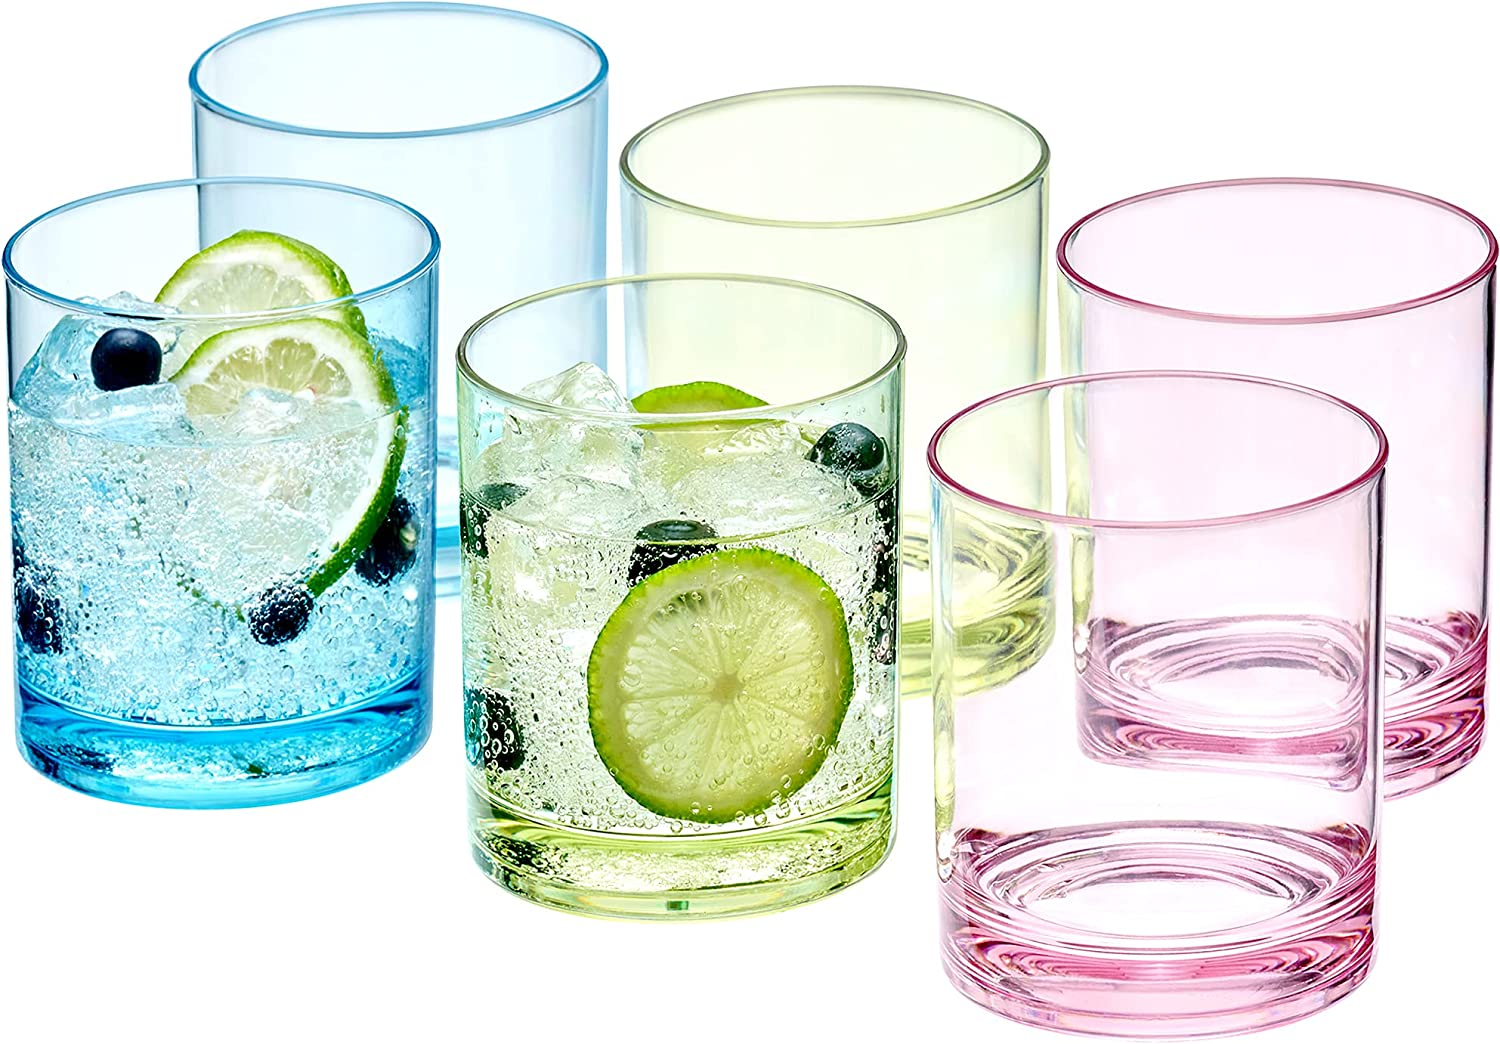 Amazing Abby - Probity - 12-Ounce Plastic Tumblers (Set of 6), Plastic Drinking Glasses, Mixed-Color High-Balls, BPA-Free, Shatter-Proof, Dishwasher-Safe